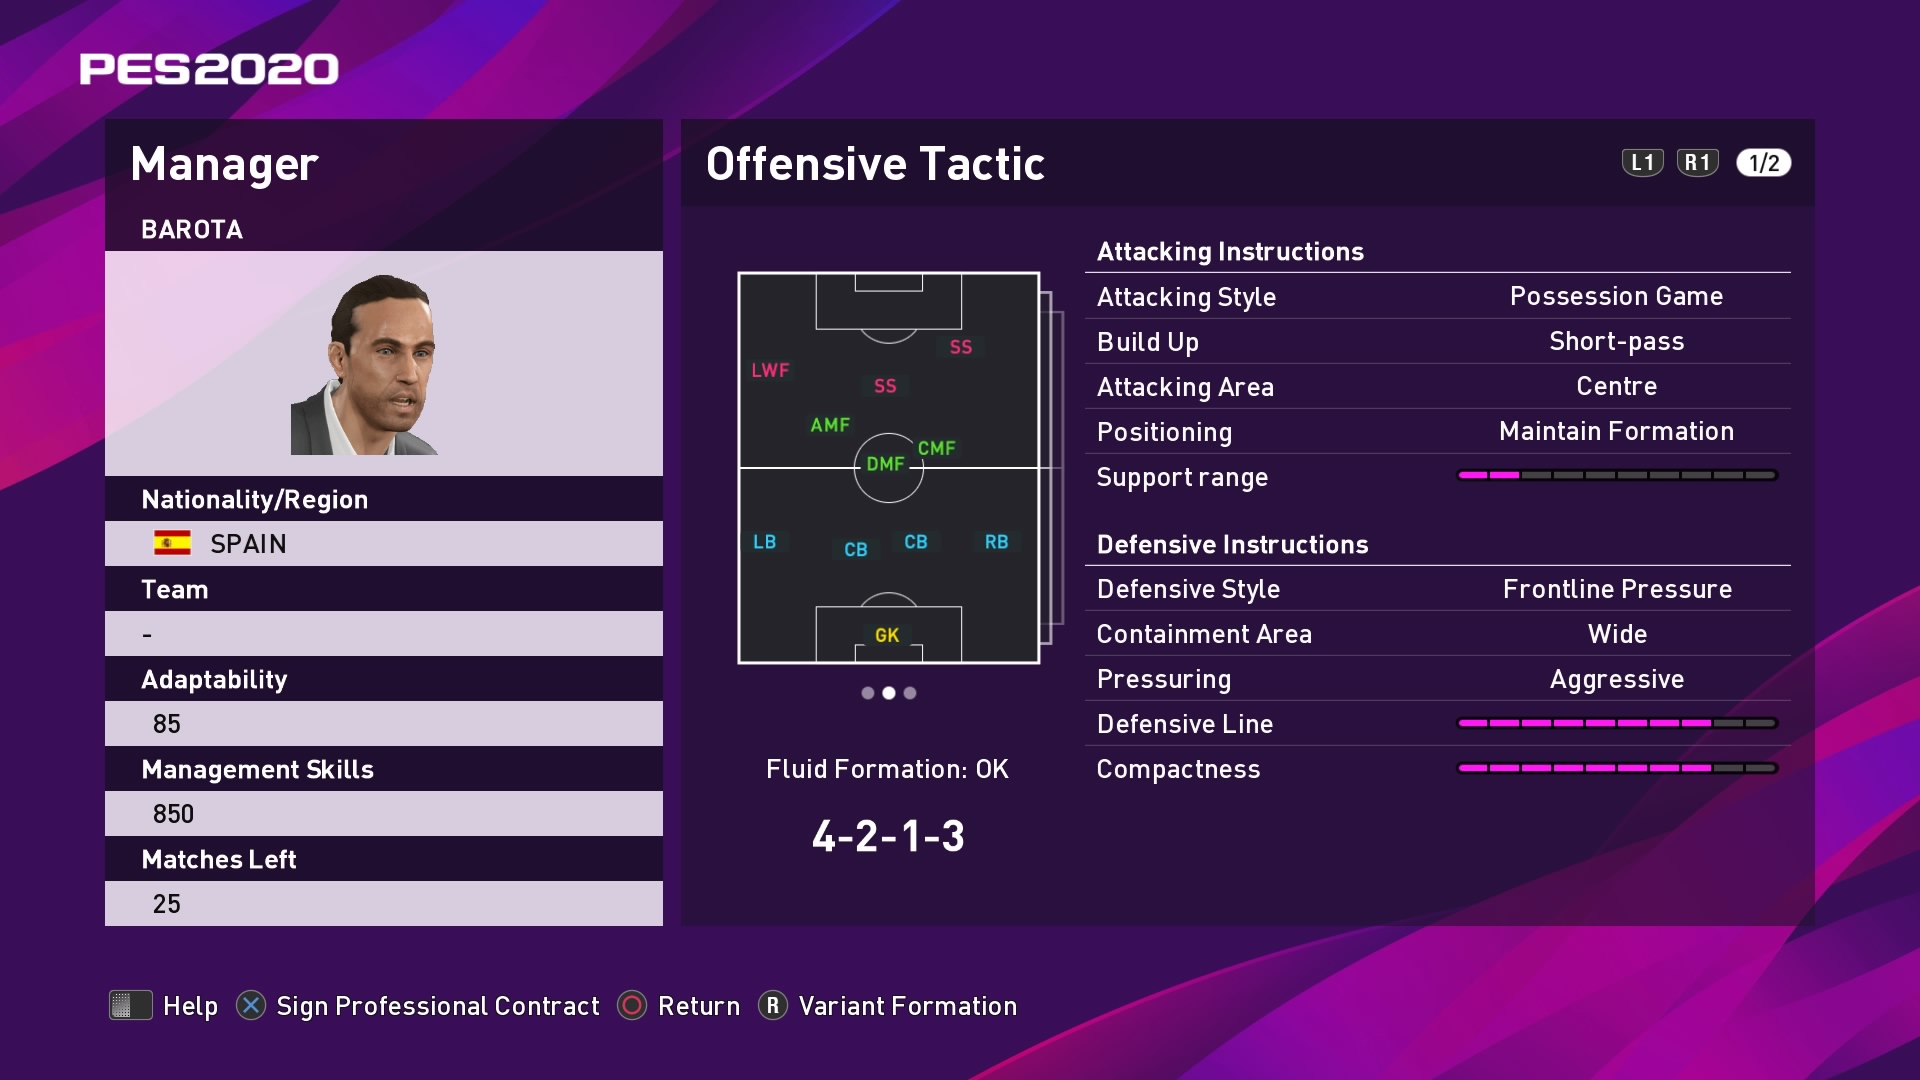 Barota Offensive Tactic when in possession